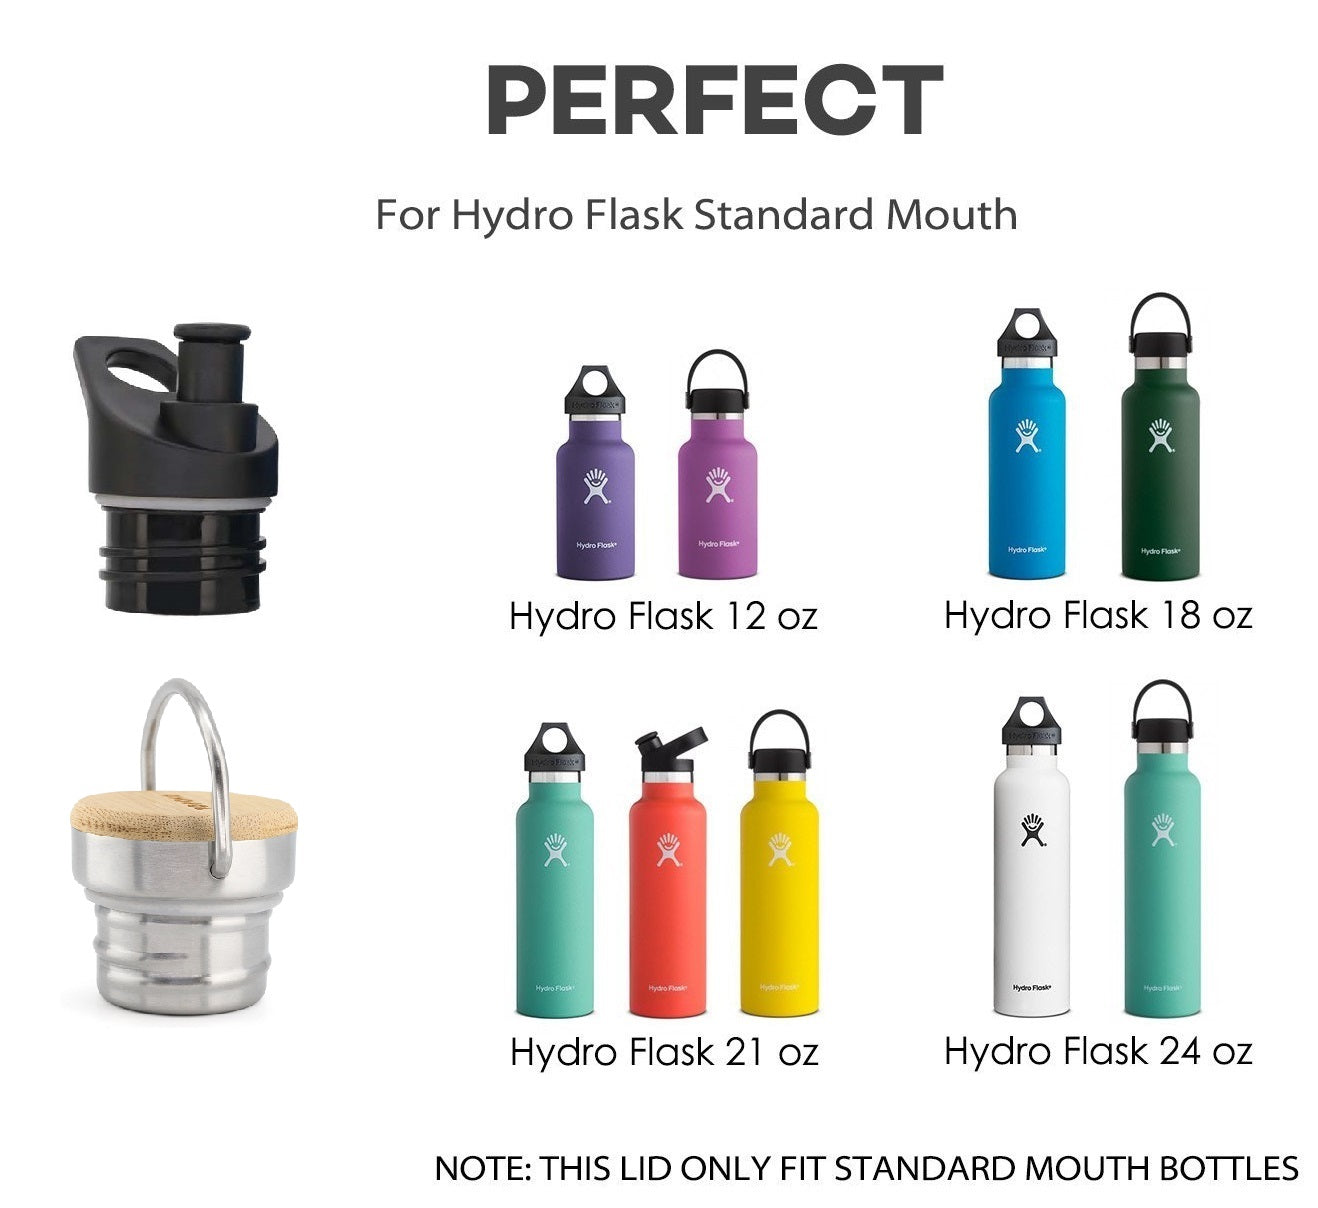 Replacement Lids For Hydro Flask Standard Mouth Water Bottle-Bite Valve Stainless Steel Lid Twist Sports Lid Straw Lid For Hydro Flask Bottle